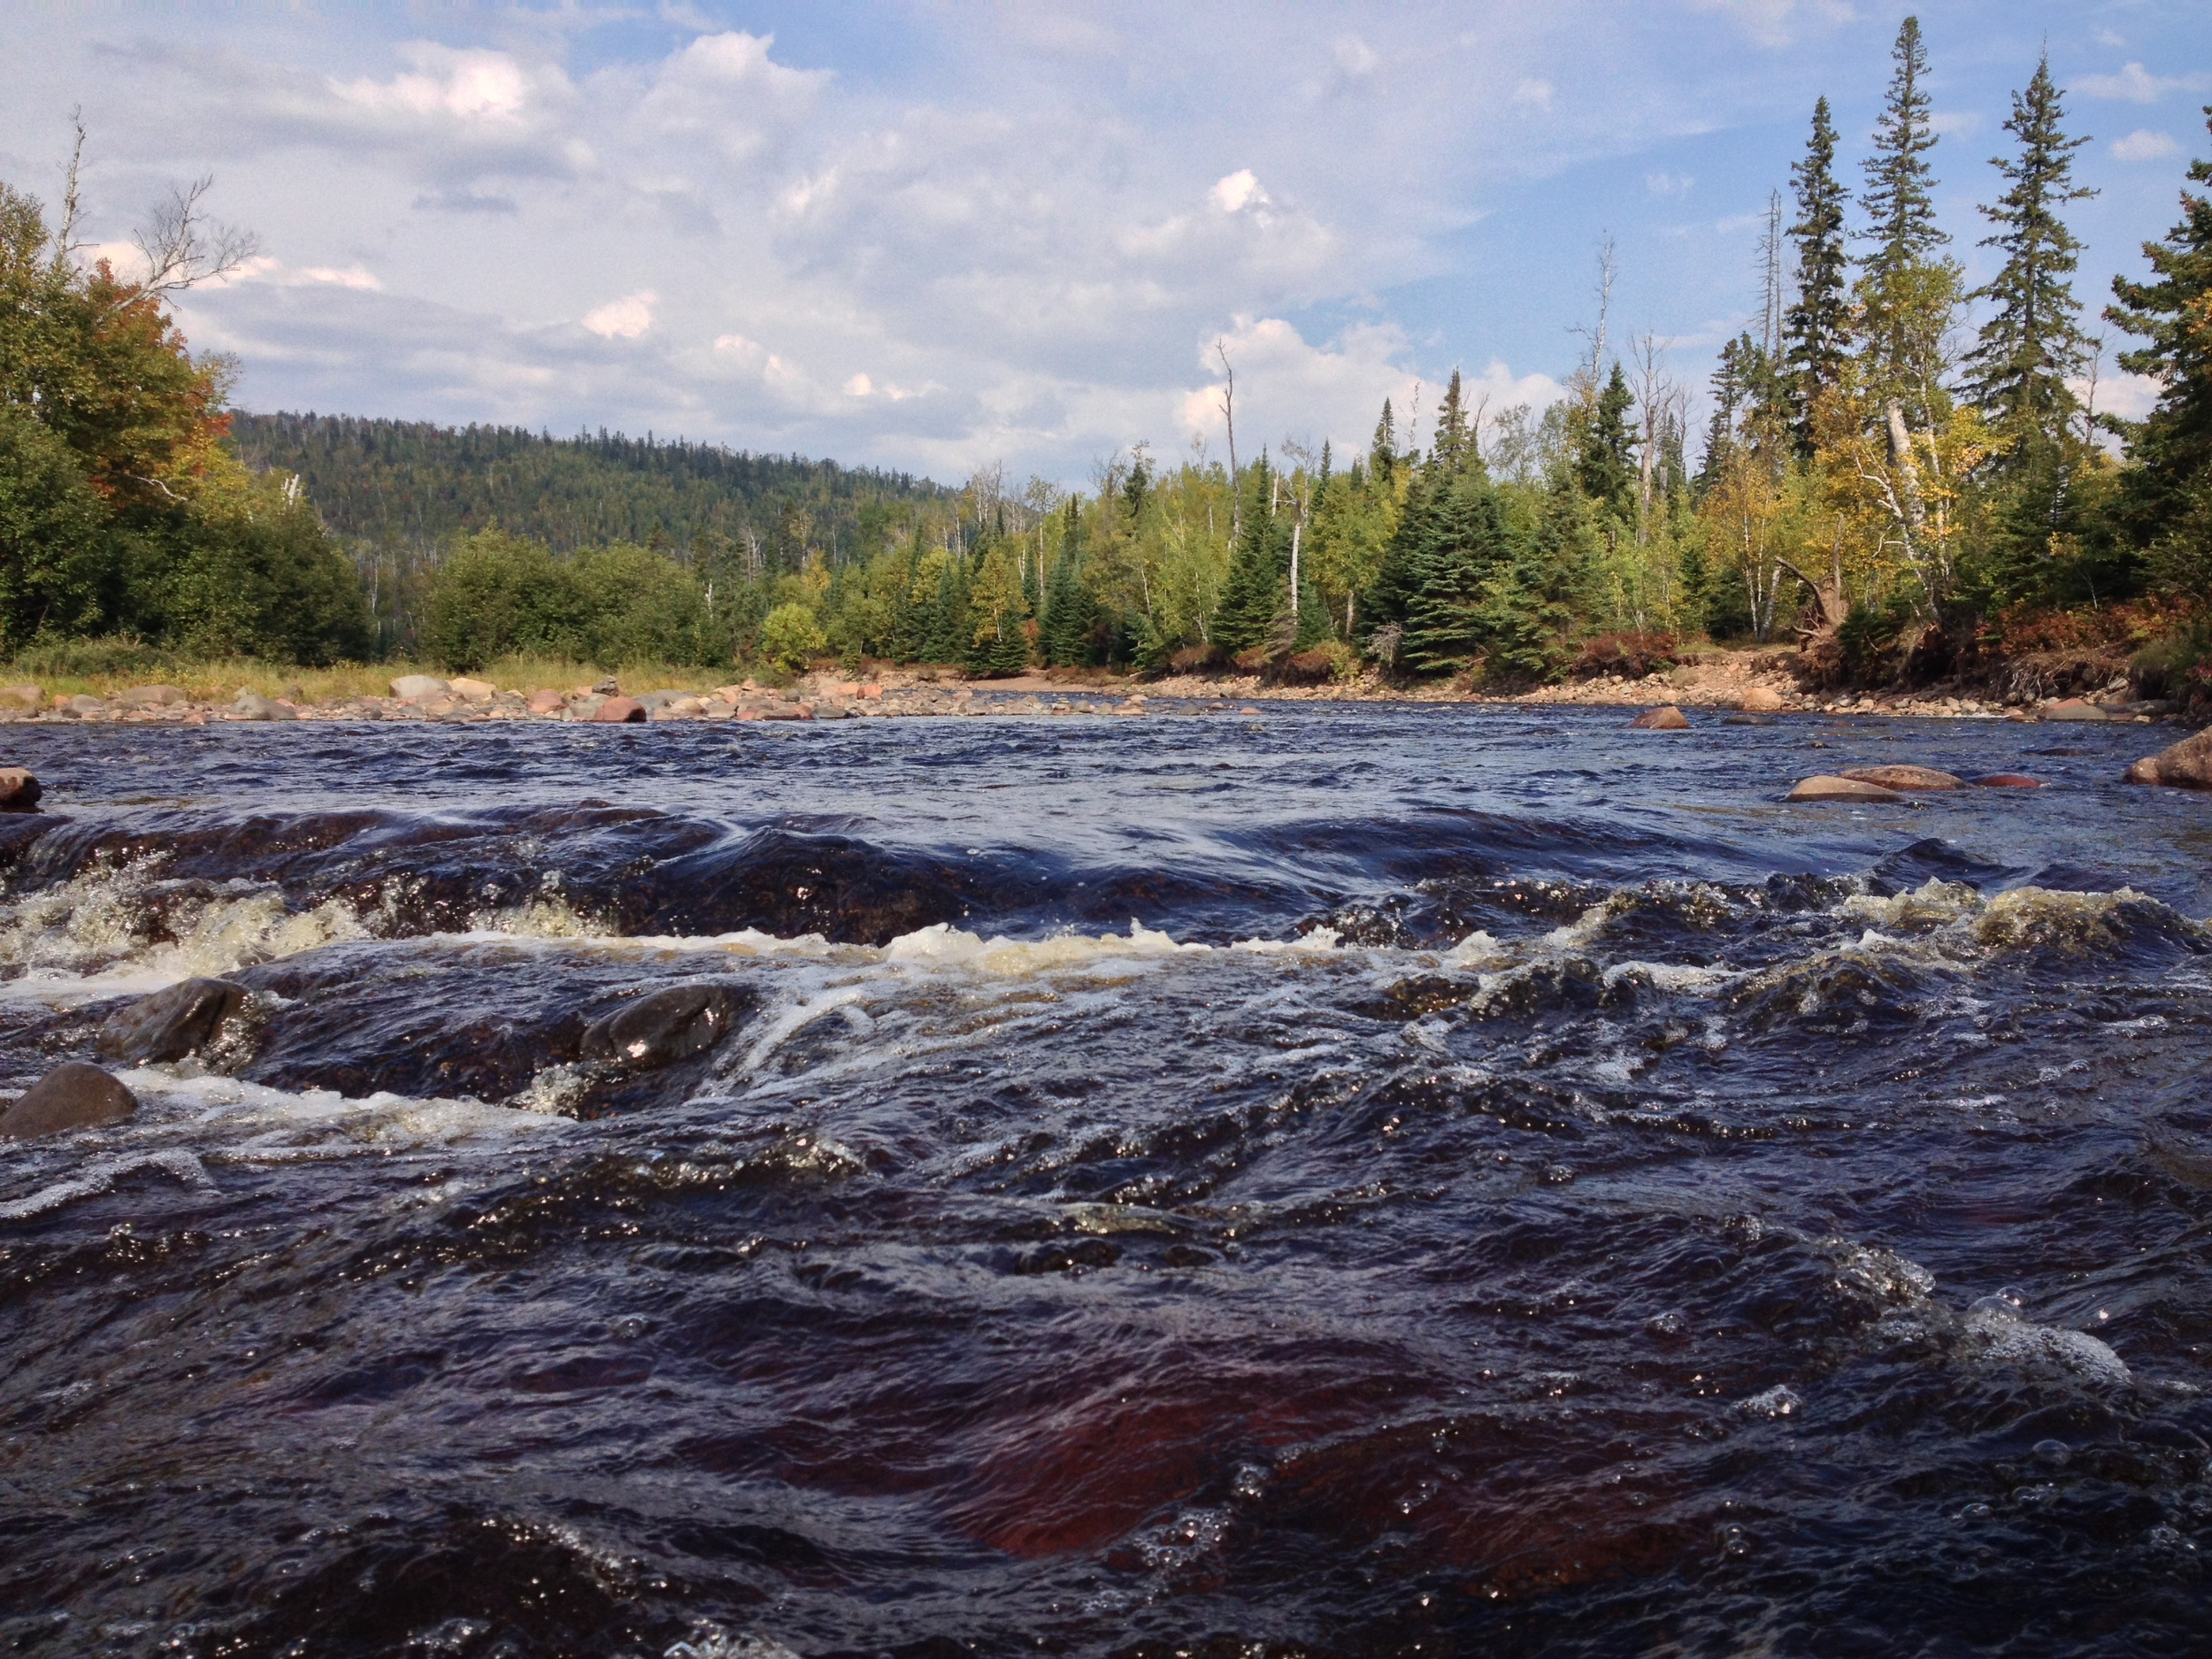 Minnesota wilderness and forests